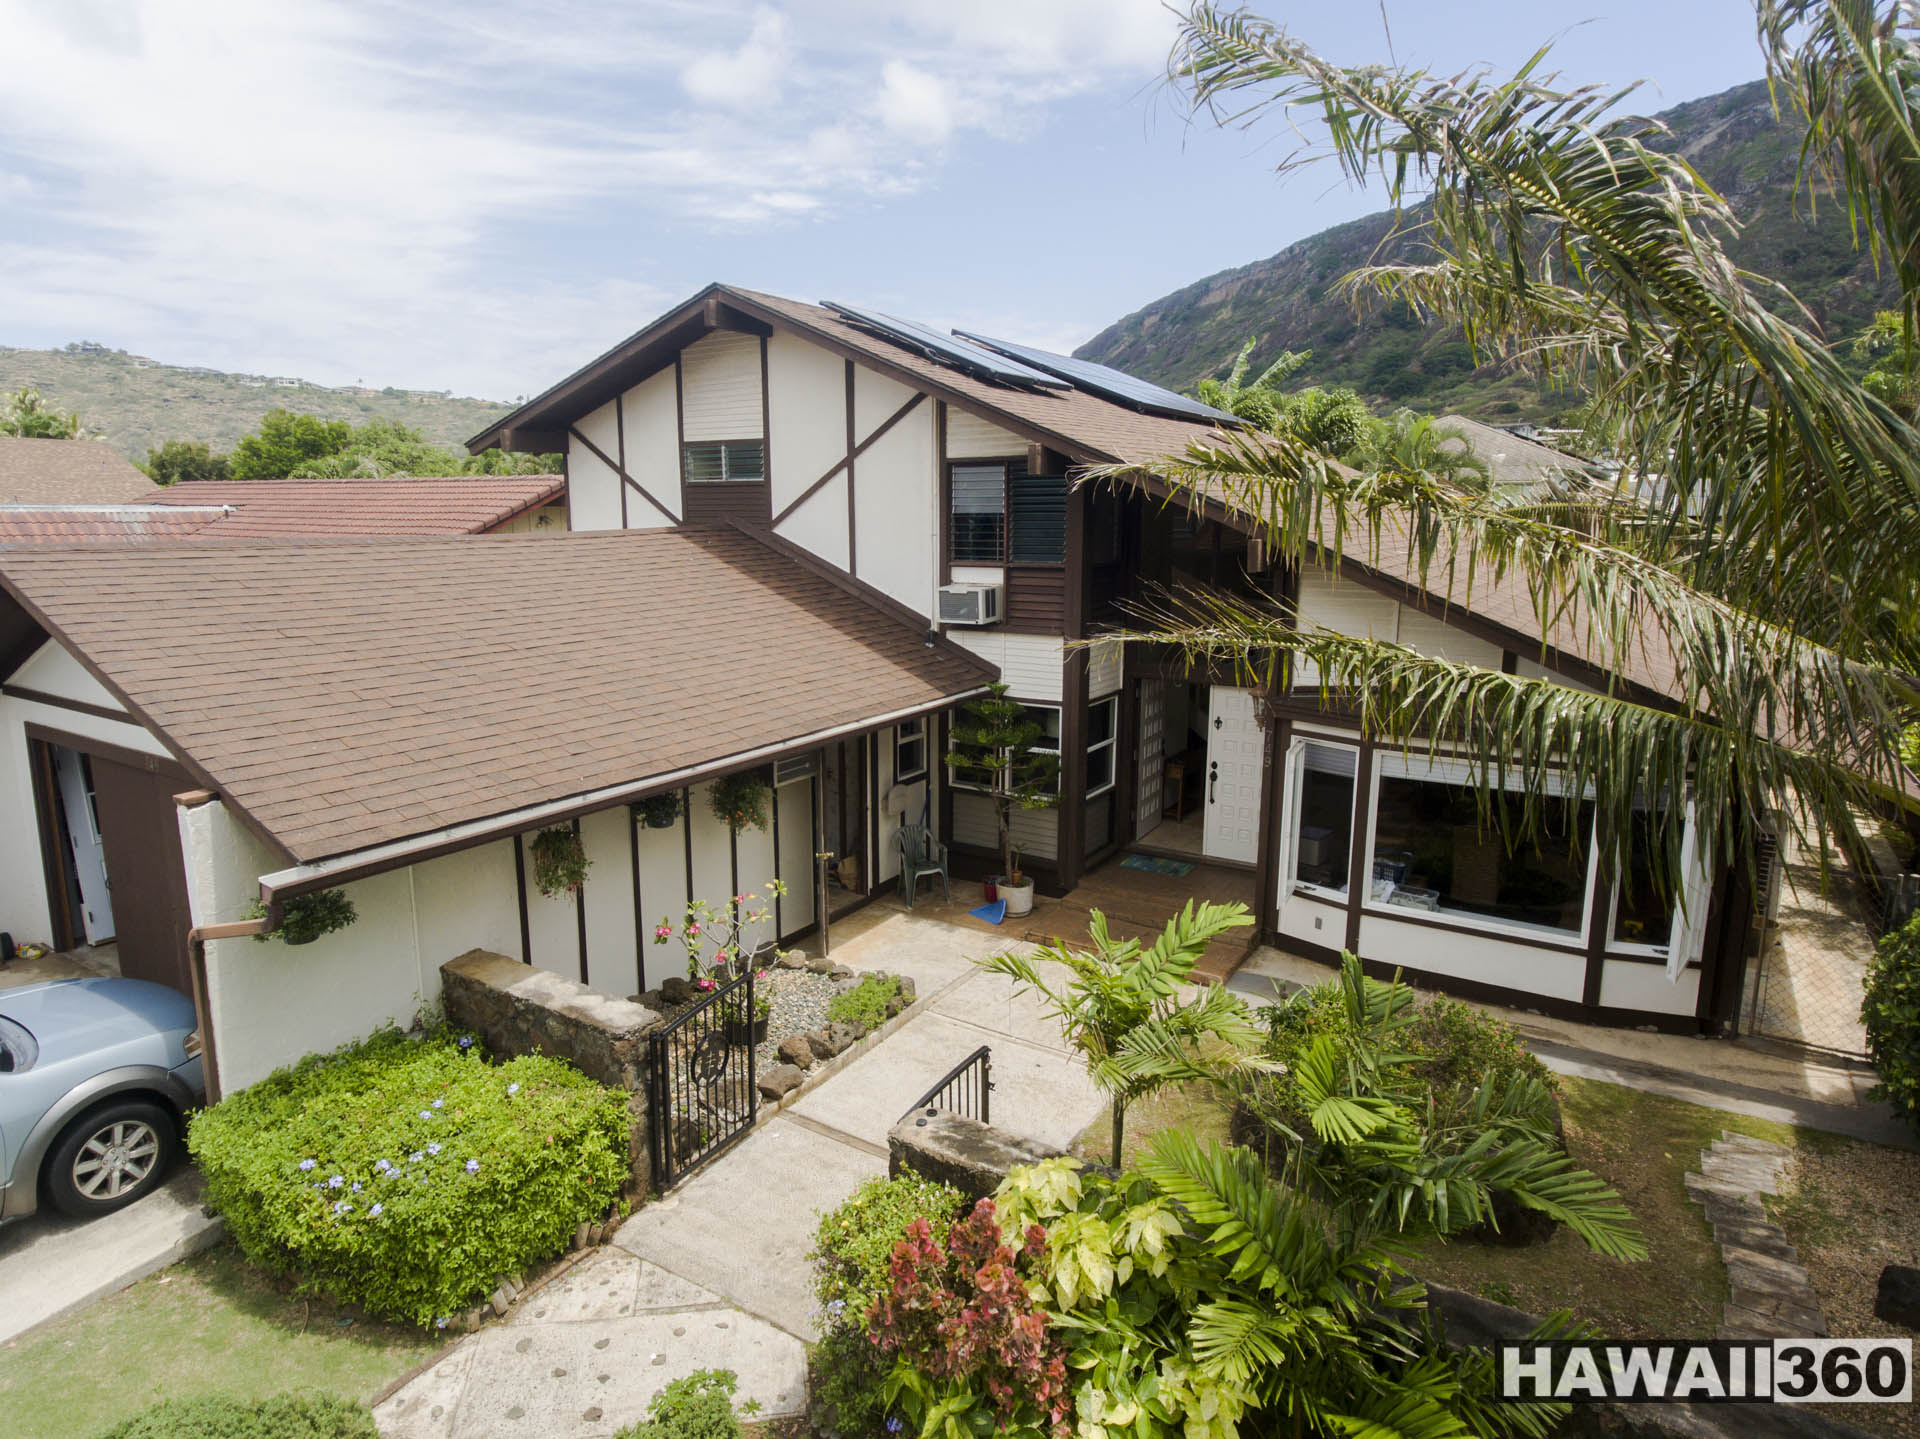 Real Estate Photography - Hawaii360